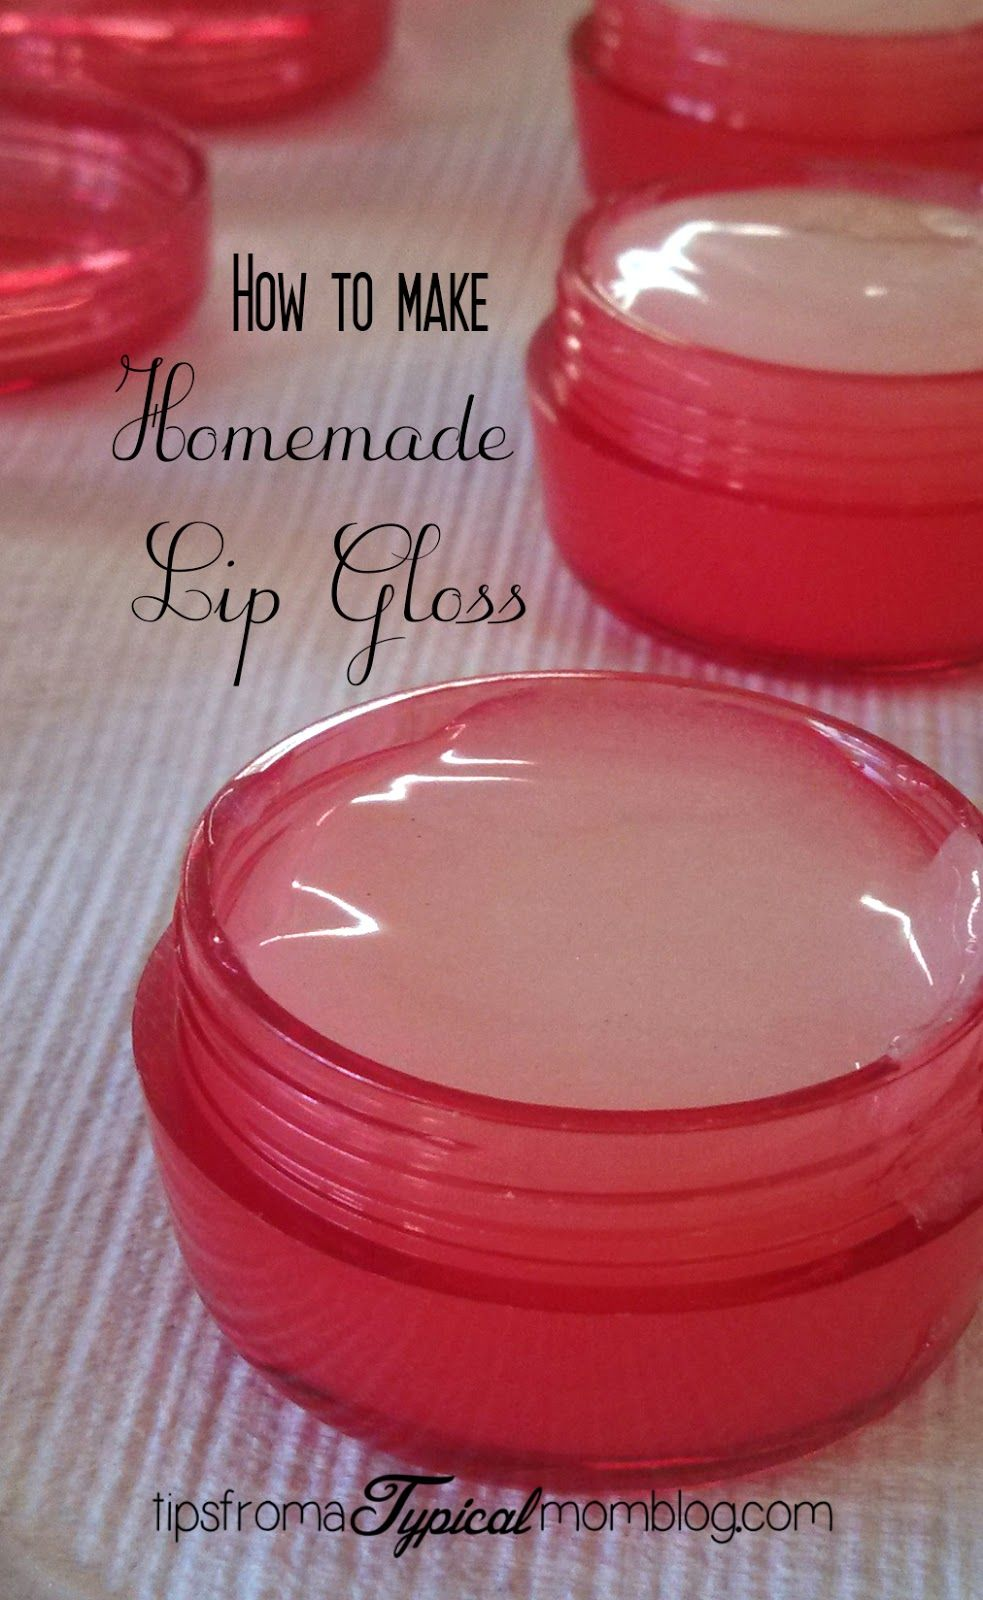 How To Make Homemade Lip Gloss With Kool Aid Tips From A Typical Mom Lip Gloss Recipe Gloss Diy Diy Lip Gloss